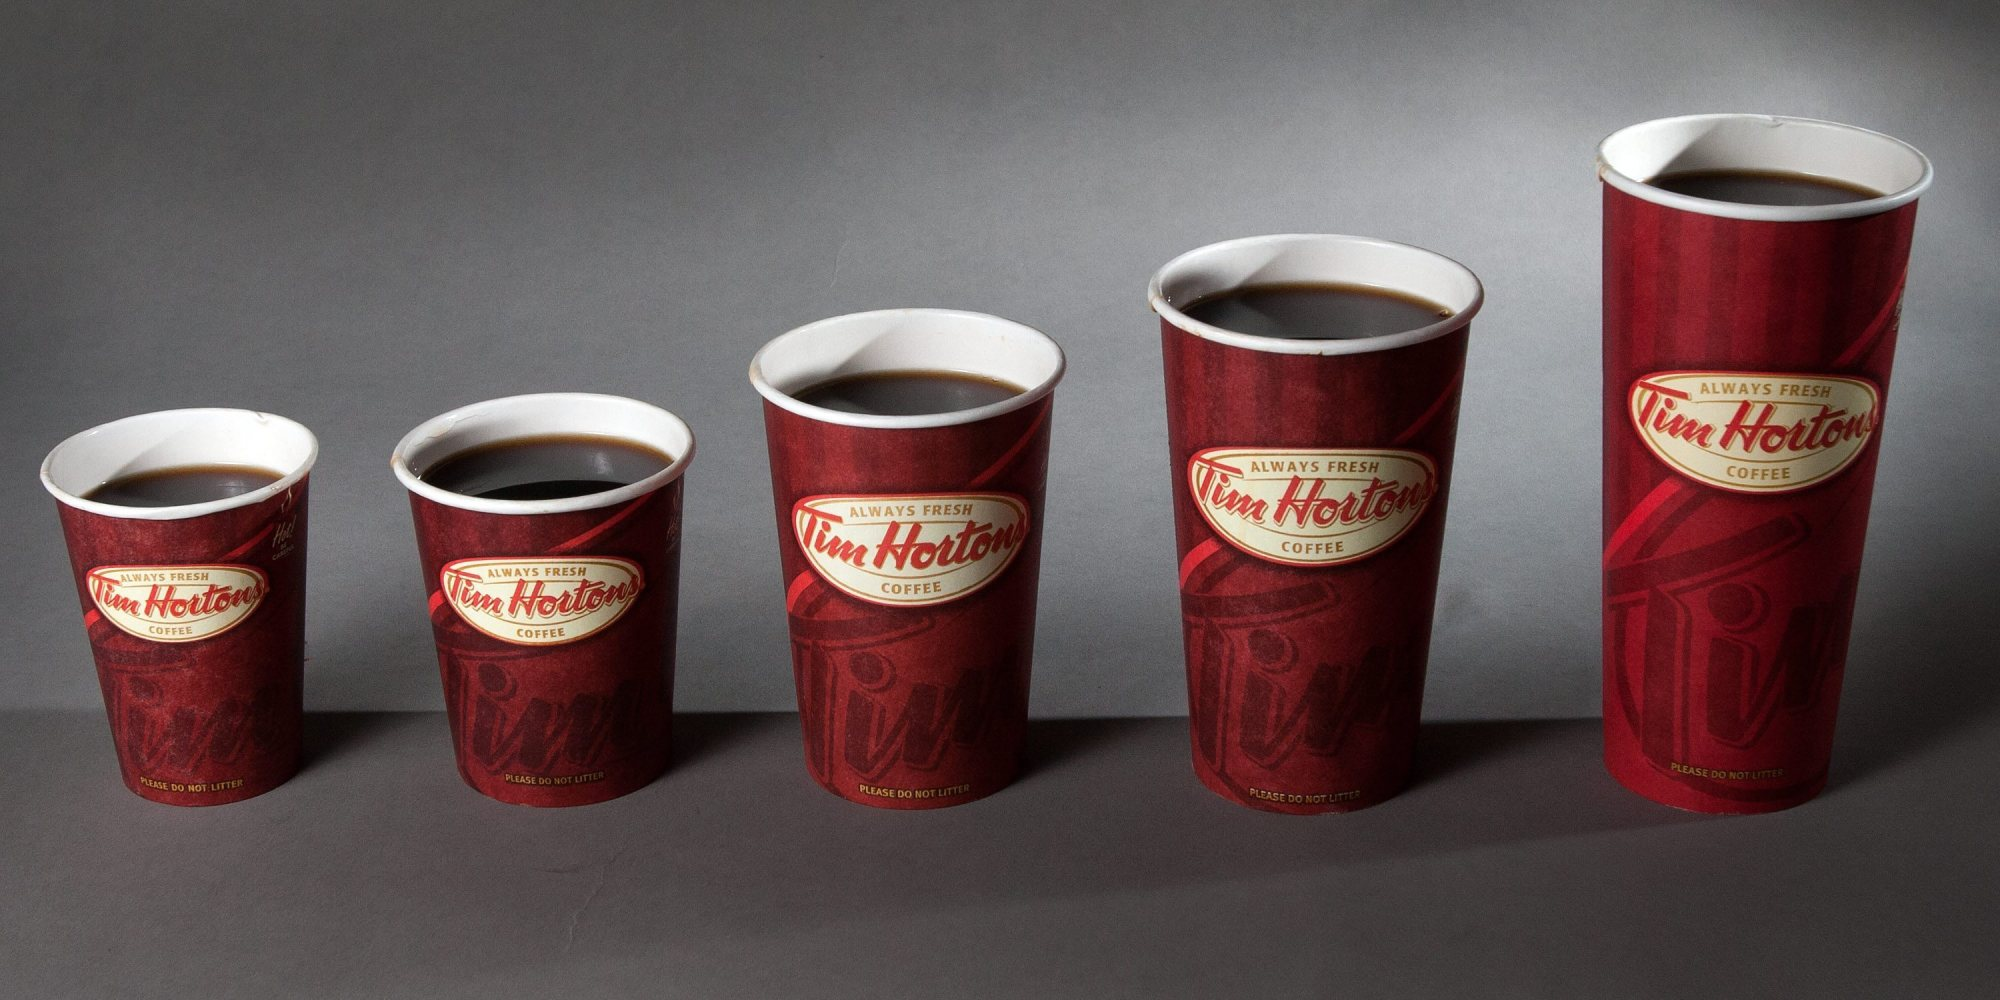 Image result for tim horton coffee